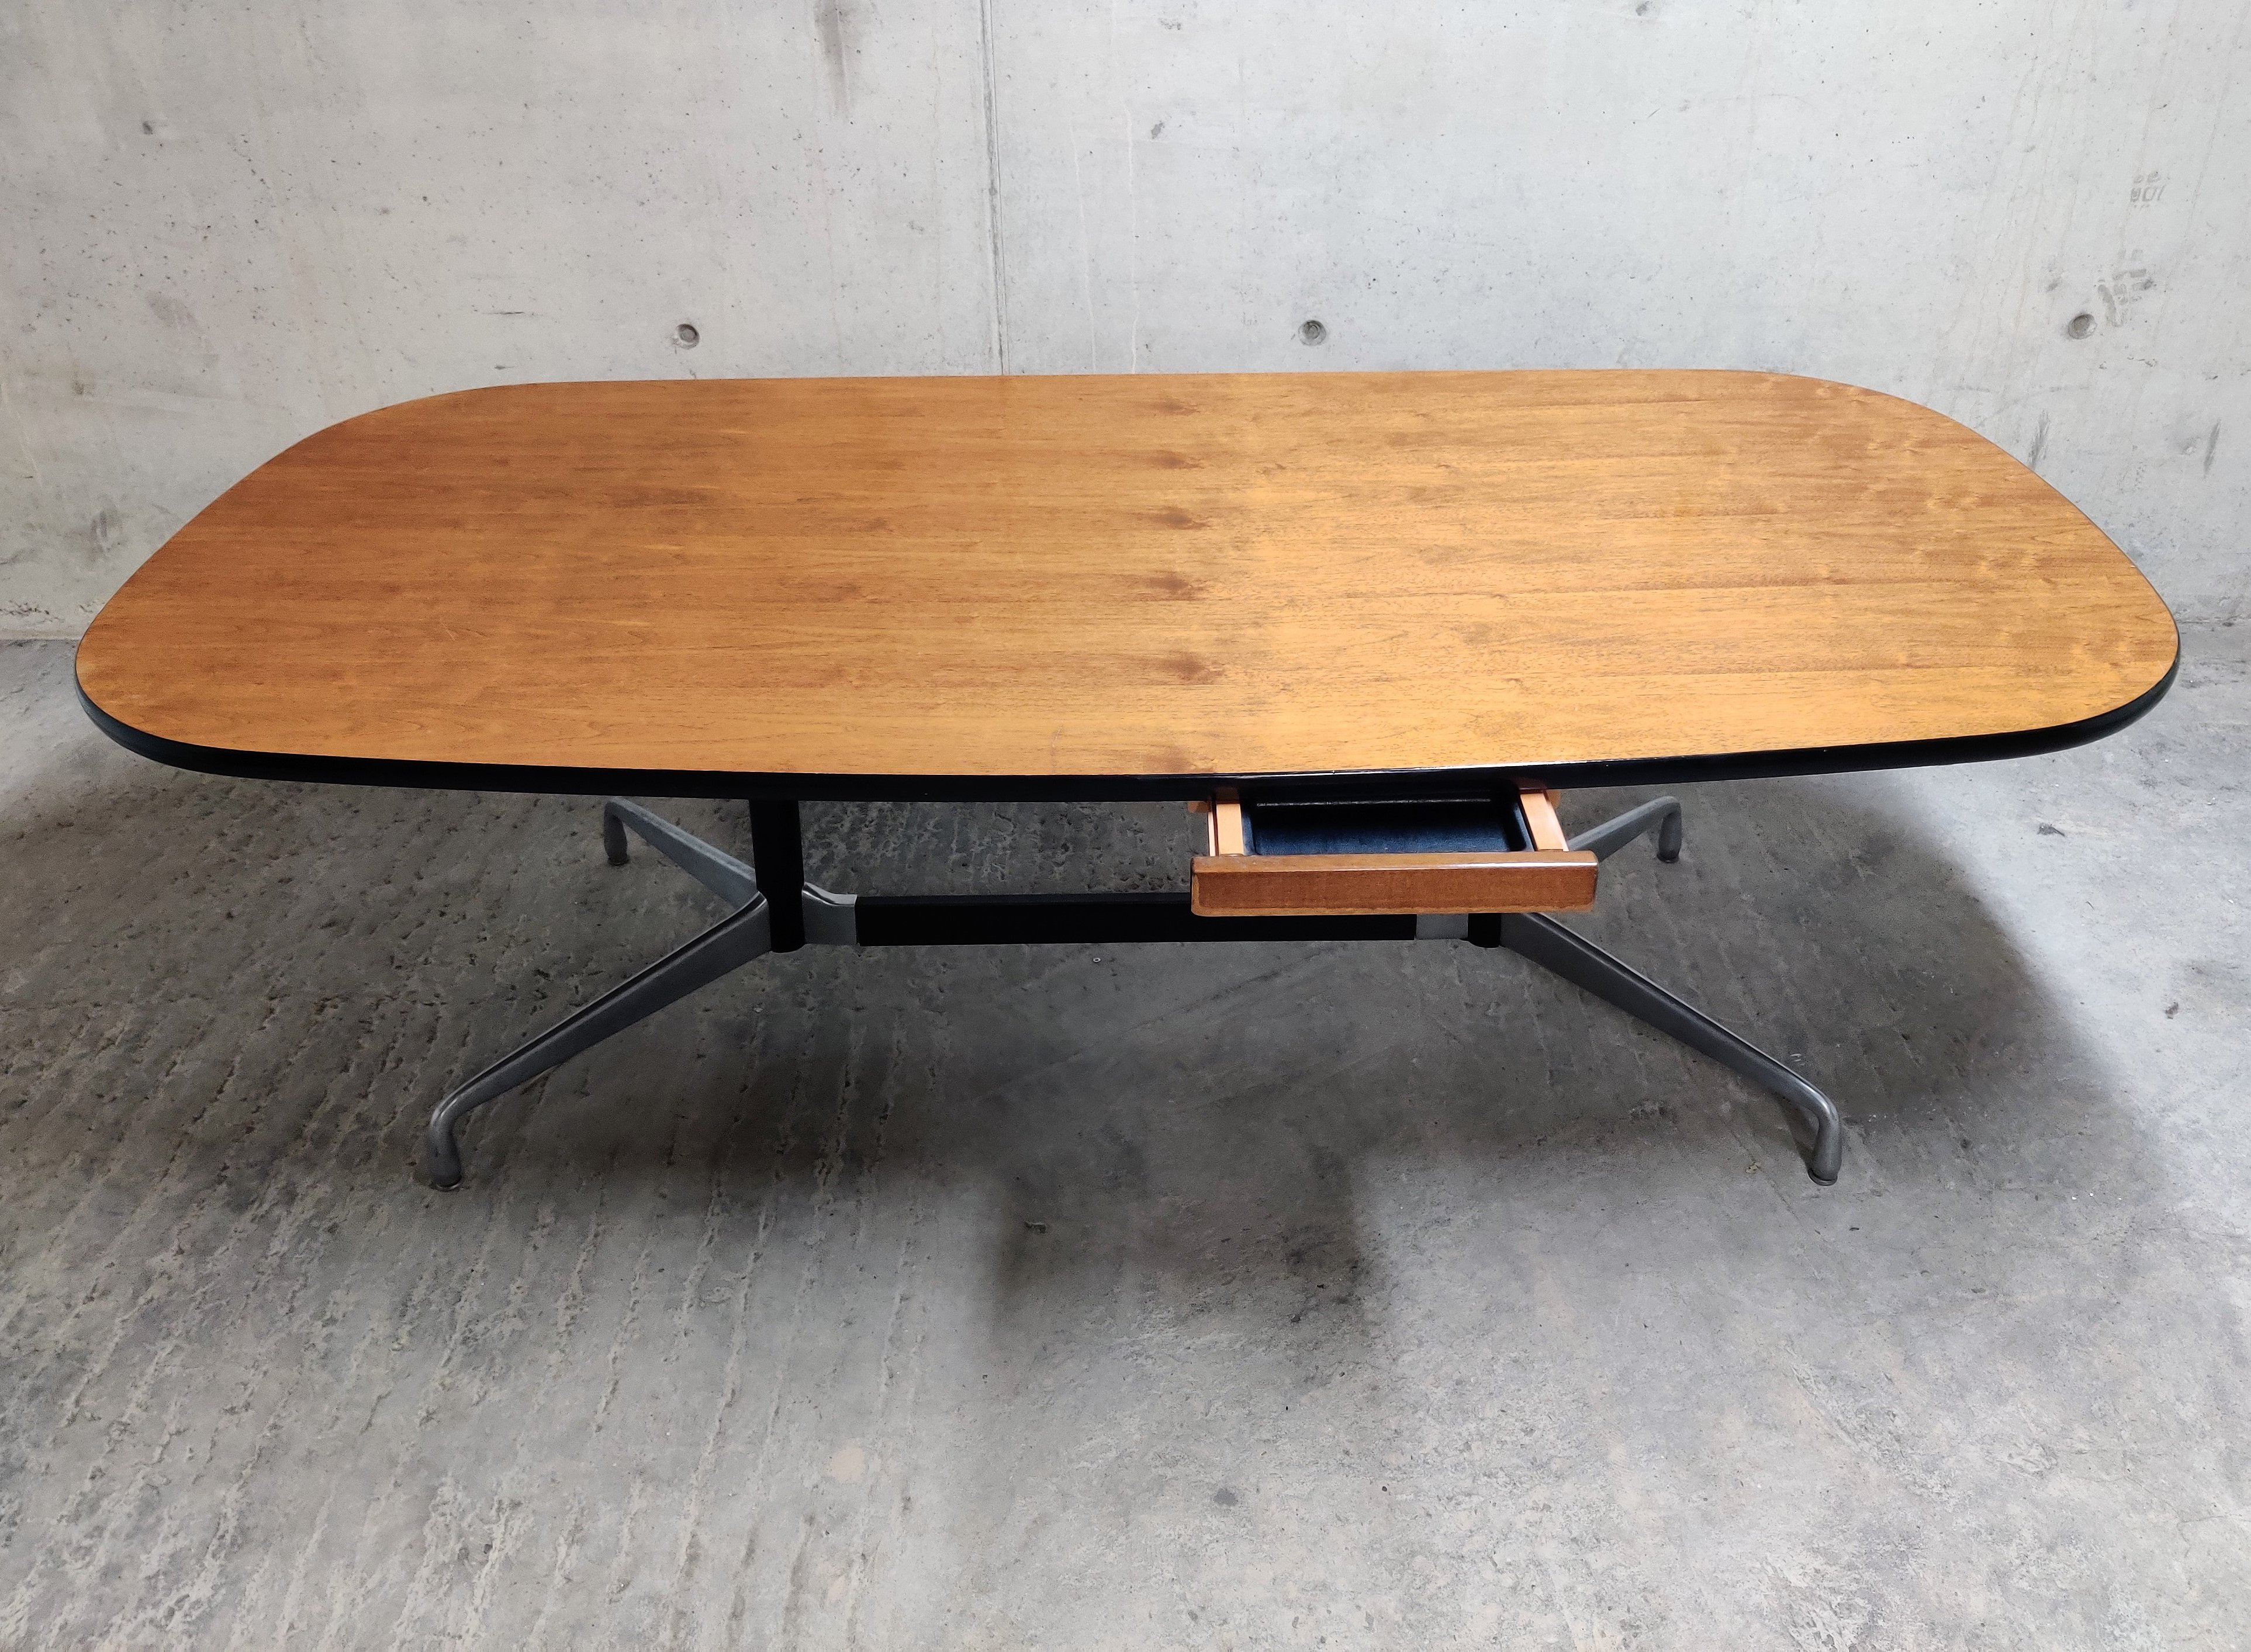 Charles Ray Eames For Herman Miller Dining Or Office Table 1970s 123383